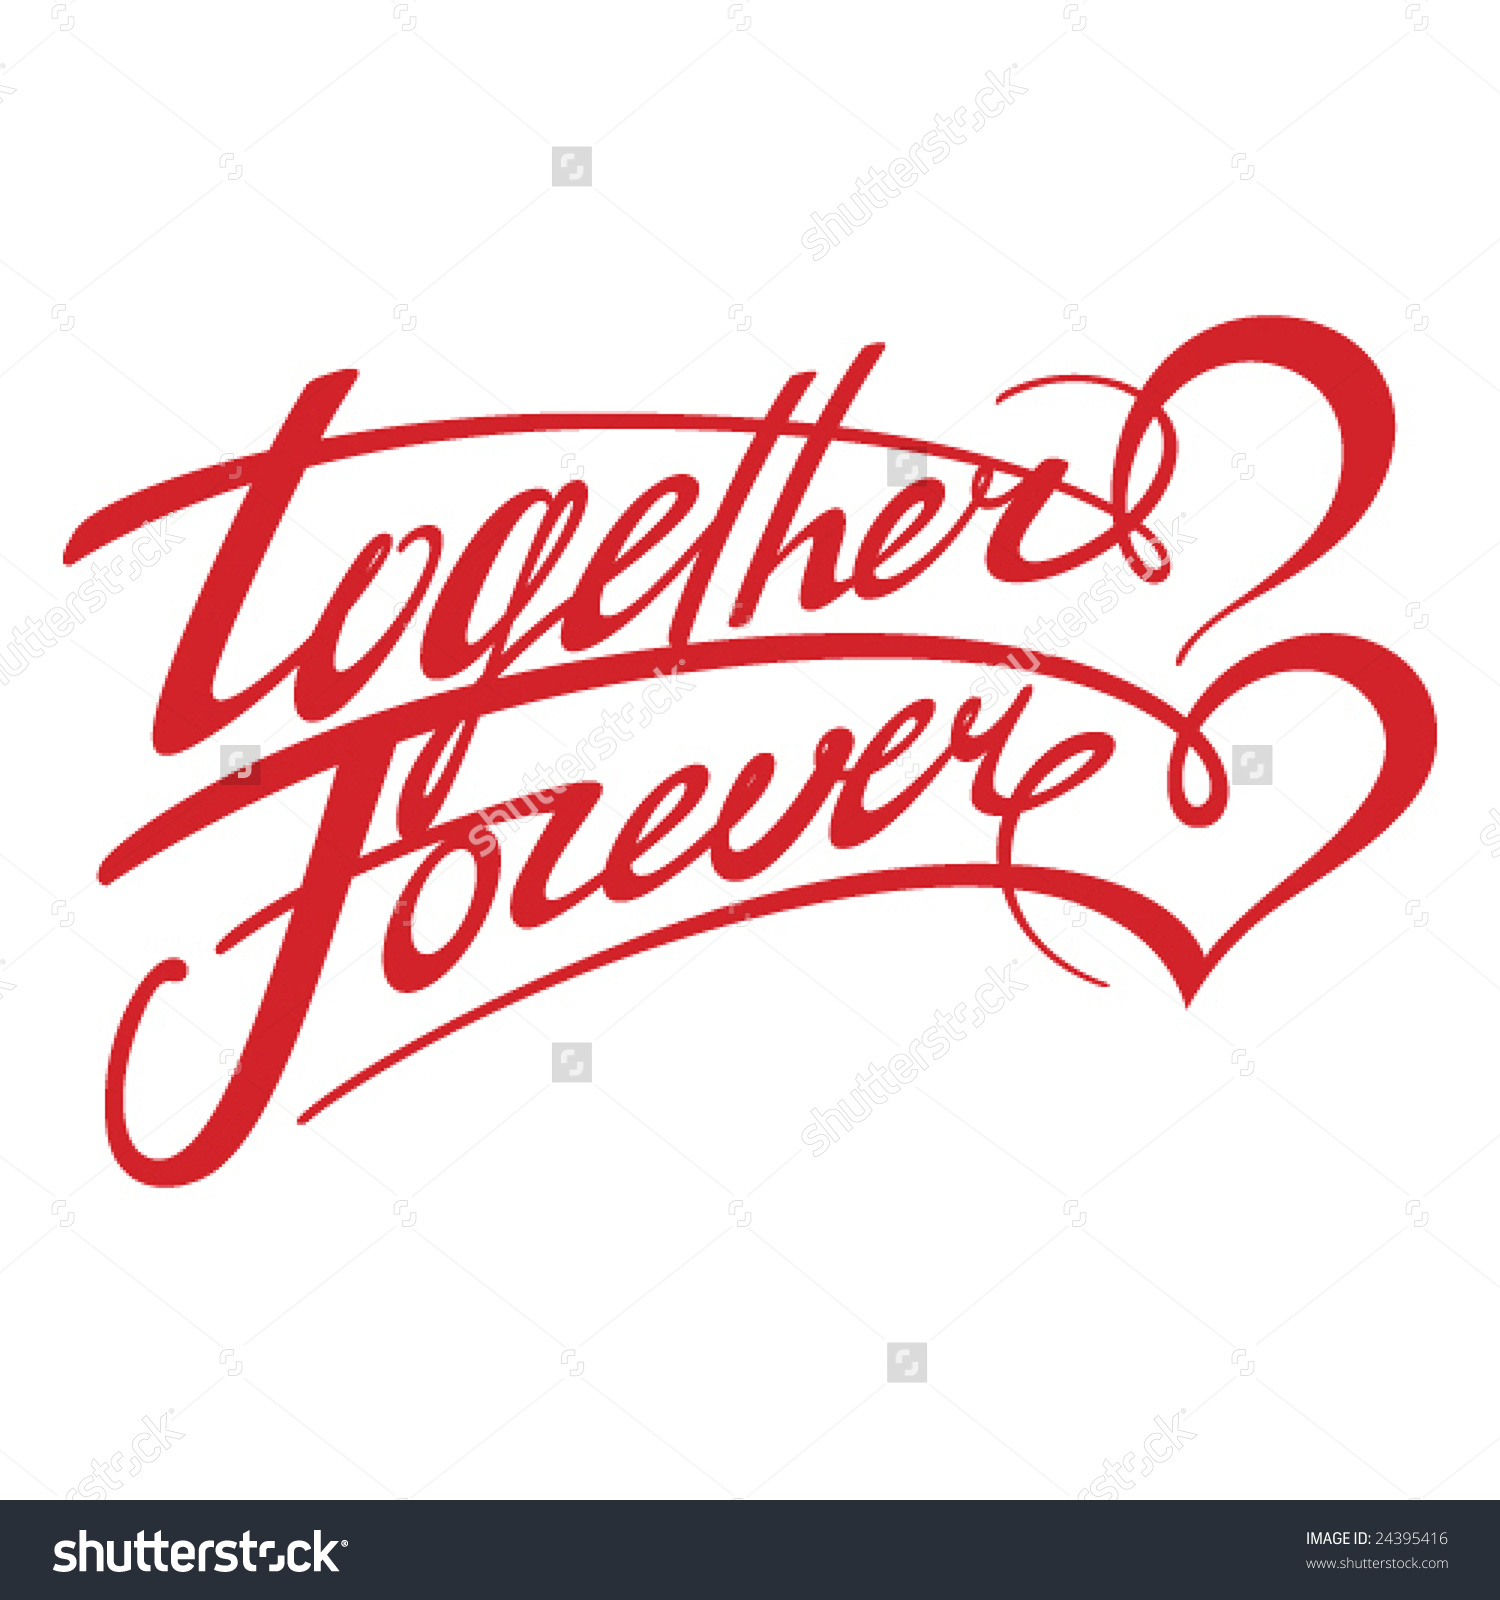 Together forever clipart.